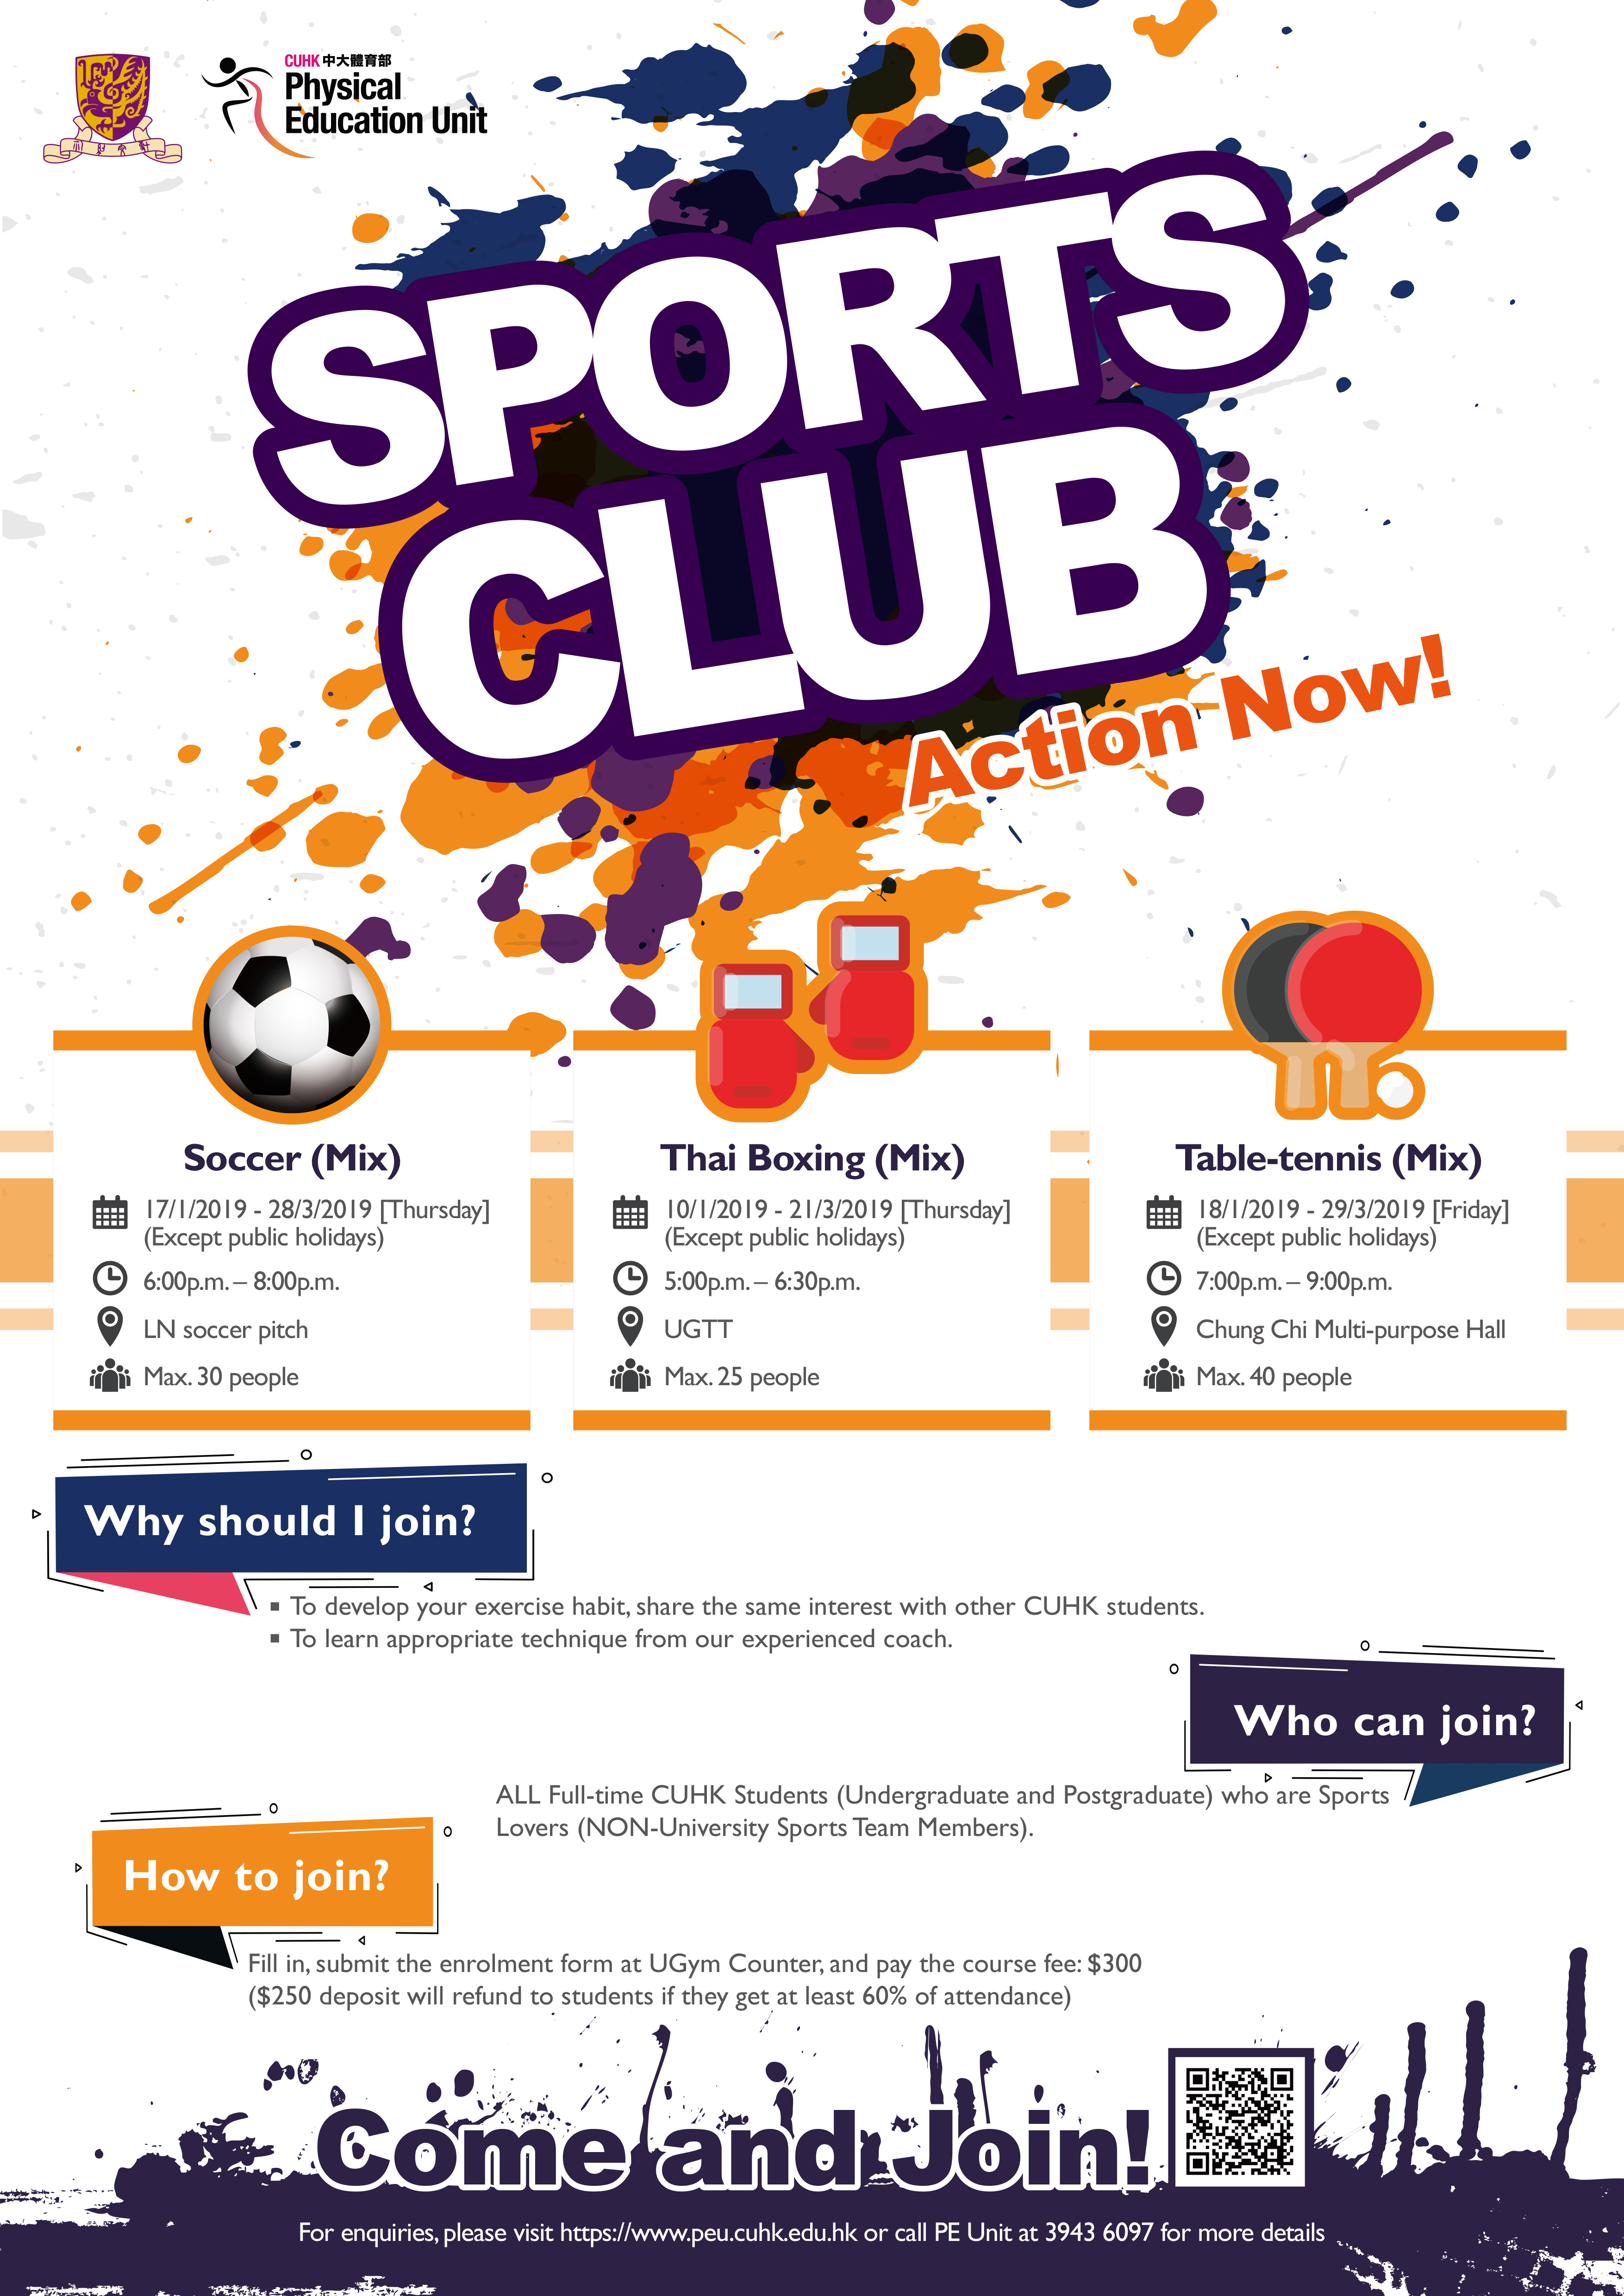 2018 Sports Club Introduction Poster